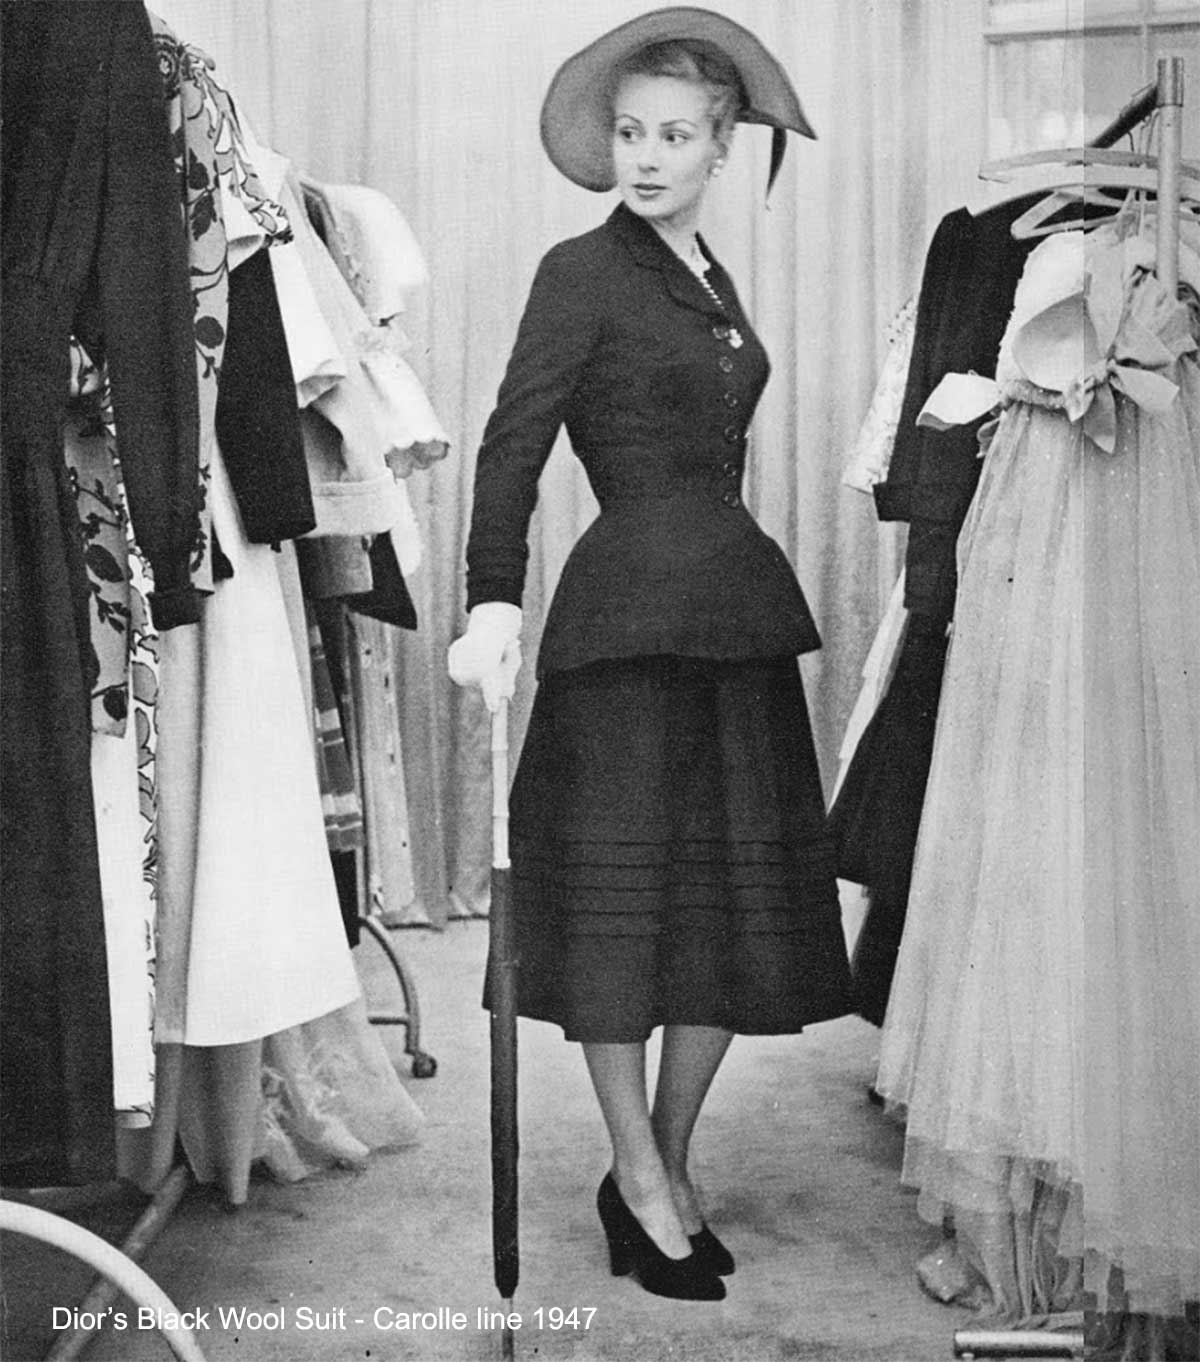 Dior-Black-Wool-Suit-Corolle-line-1947